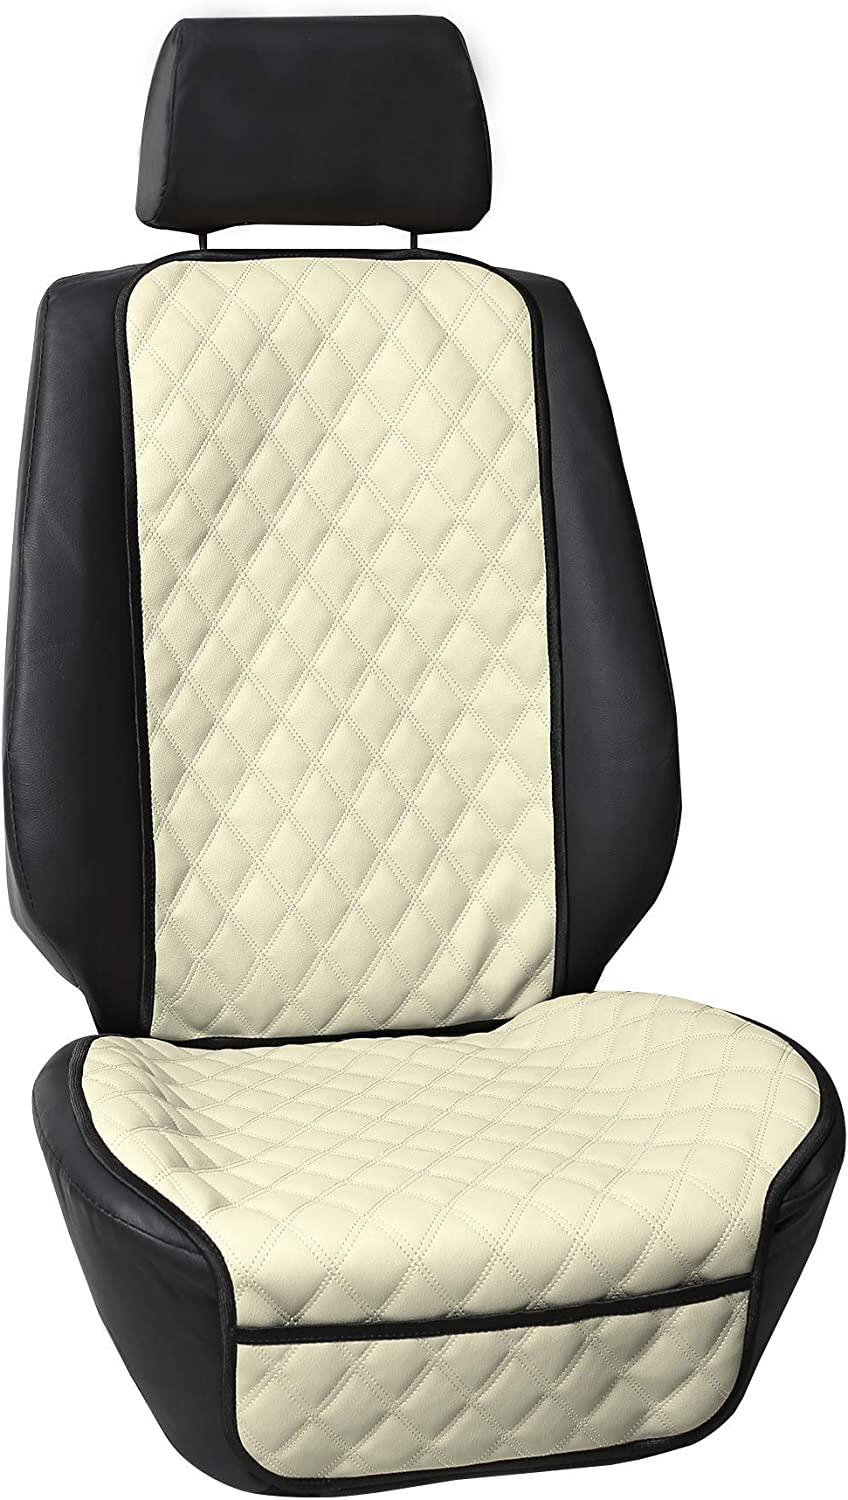 FH Group FH1018 Faux Leather Seat Protectors (Beige) One Seat Cushion with Gift - Universal Fit for Cars, Trucks & SUVs